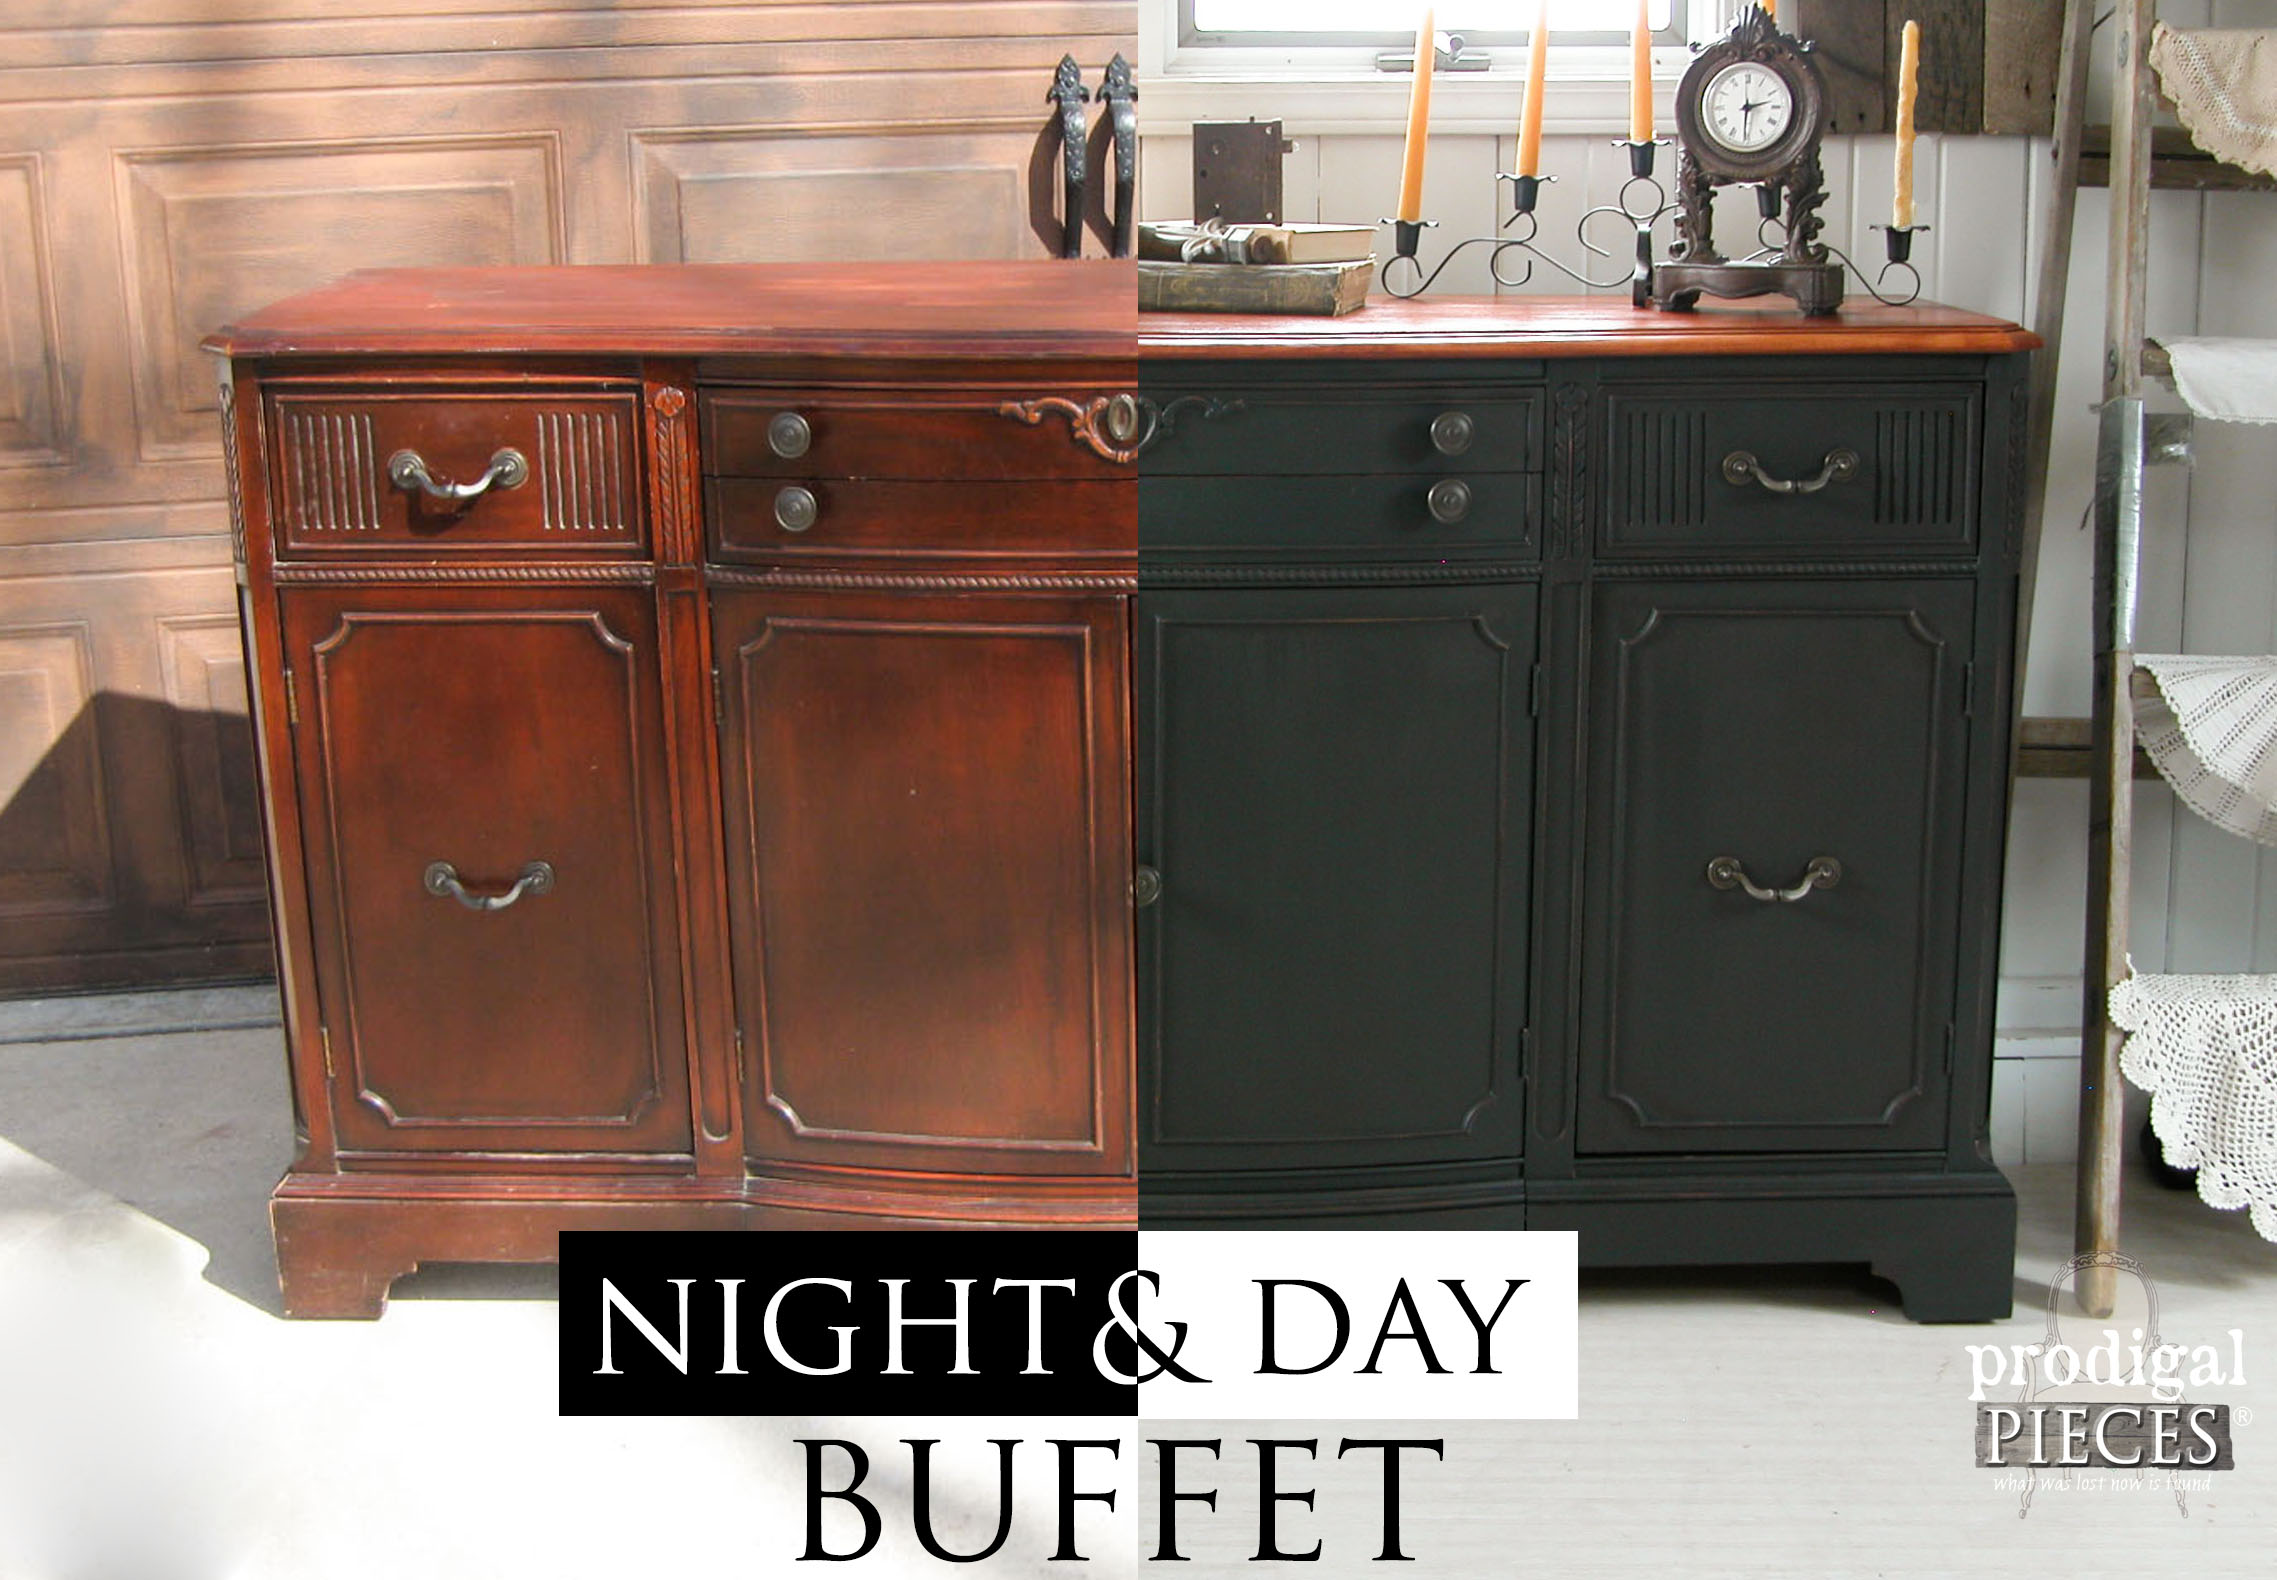 Vintage Buffet Gets Night and Day Makeover by Prodigal Pieces | prodigalpieces.com